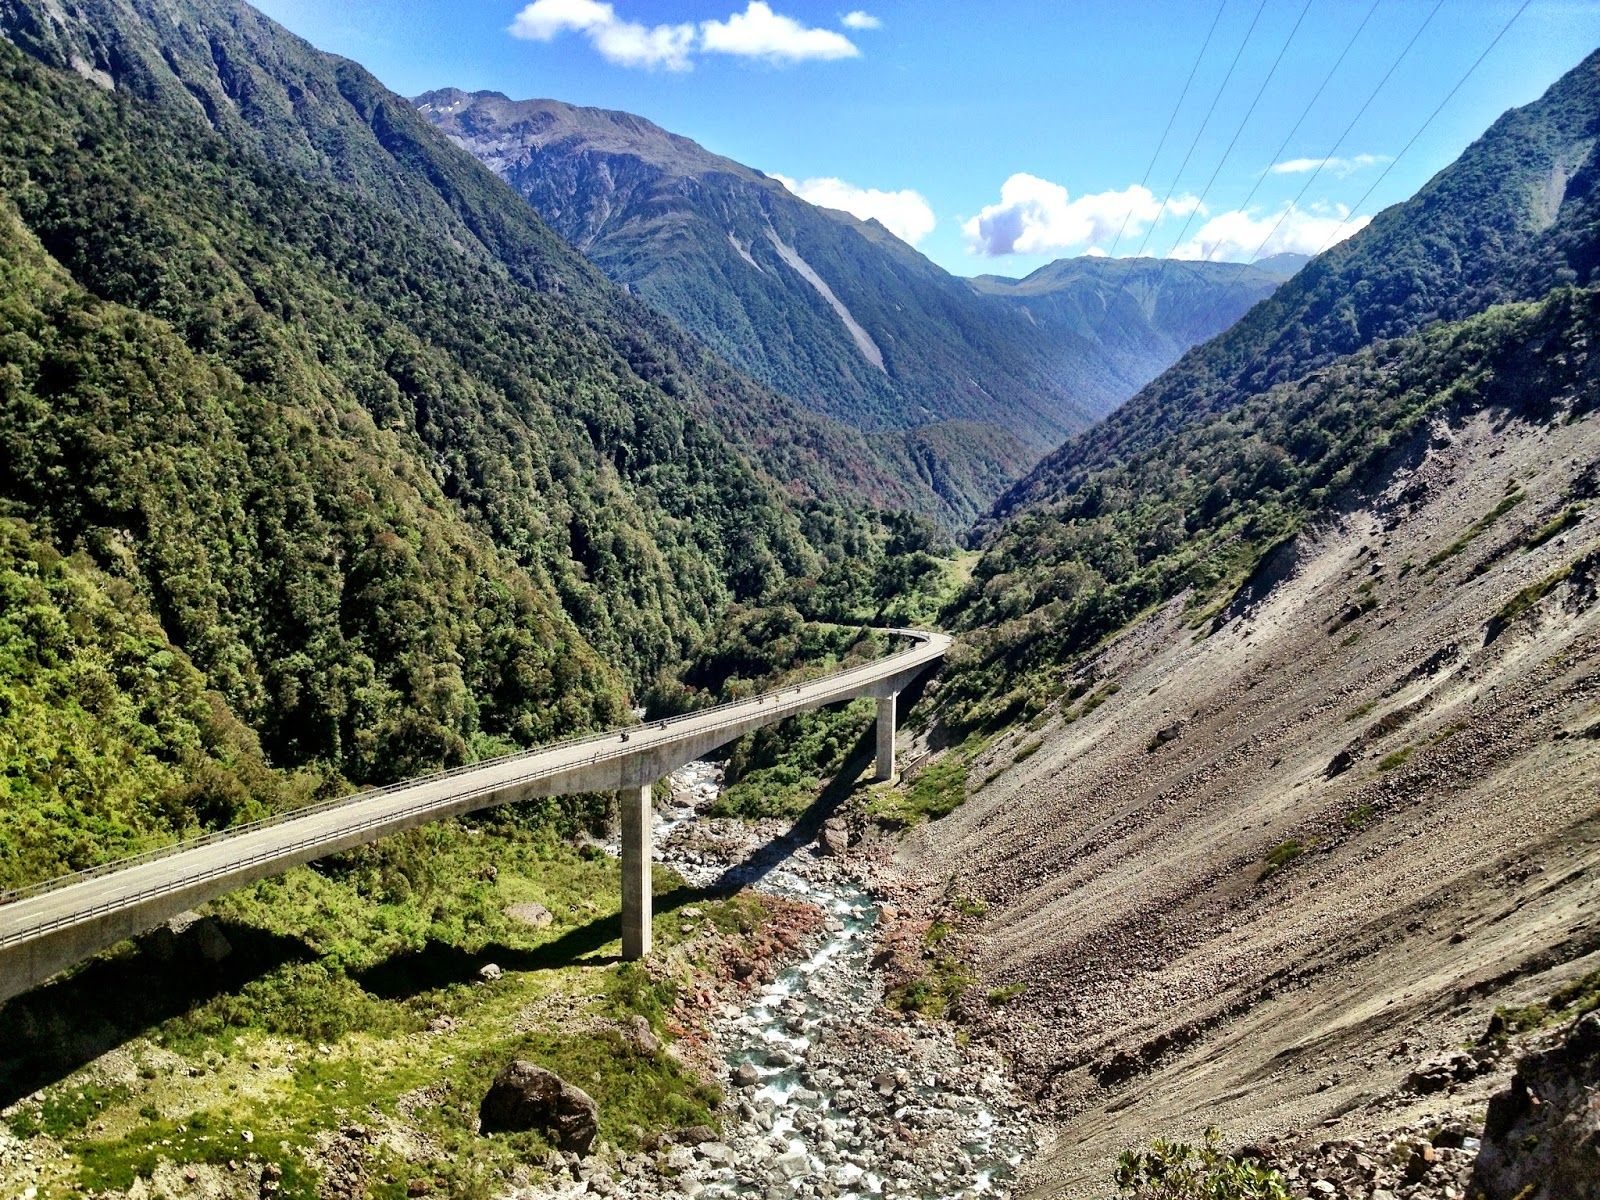 Part of the road over Arthurs Pass, New Zealand